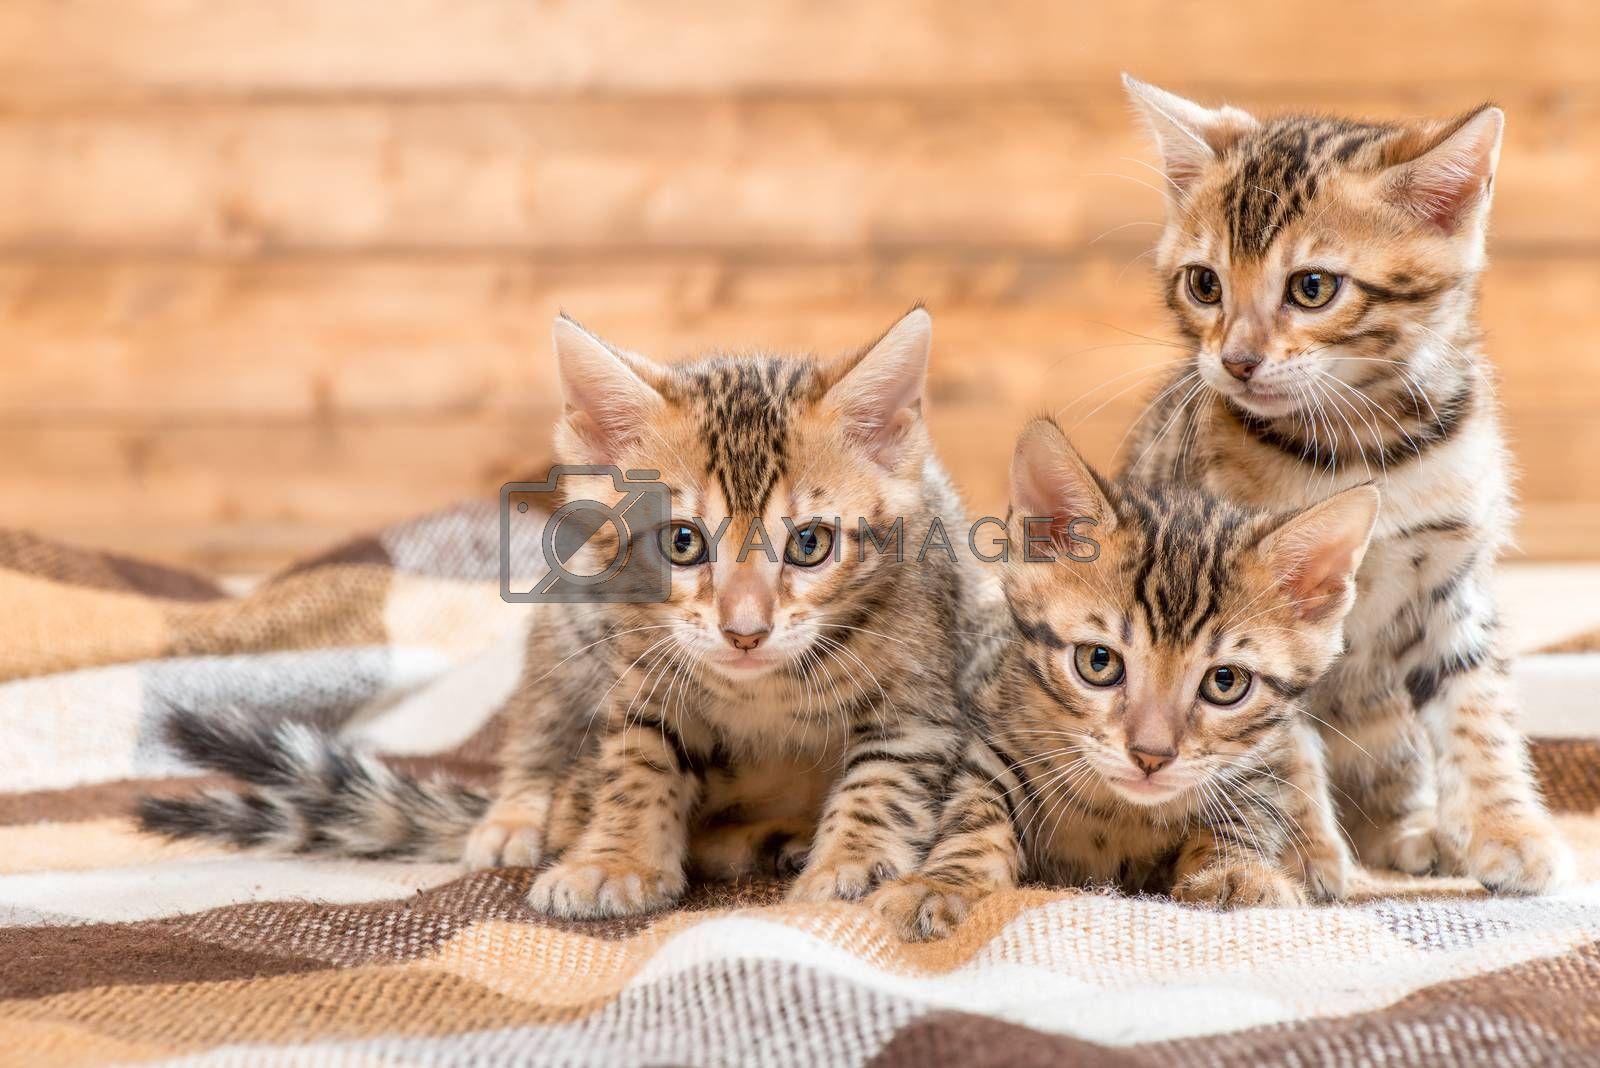 portrait of three kittens of Bengal breed on a plaid by Labunskiy K.